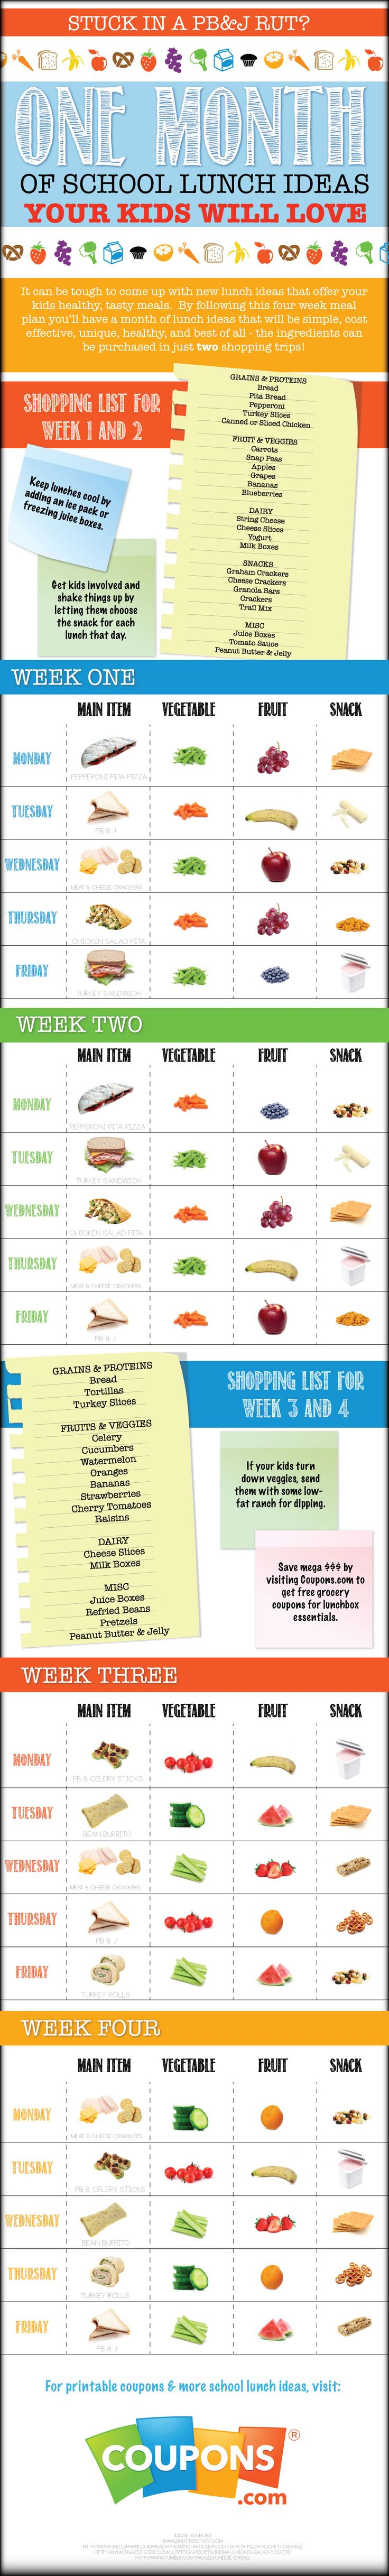 School is now in full swing and we know what a daily challenge it can be to create tasty, healthy lunches for your kids while also staying within budget.That's why we've partnered with KitchMe.com to create a free meal planner that gives you a month's worth of easy-to-follow lunch ideas.  Source: http://www.coupons.com/blog/easy-school-lunch-ideas-infographic/